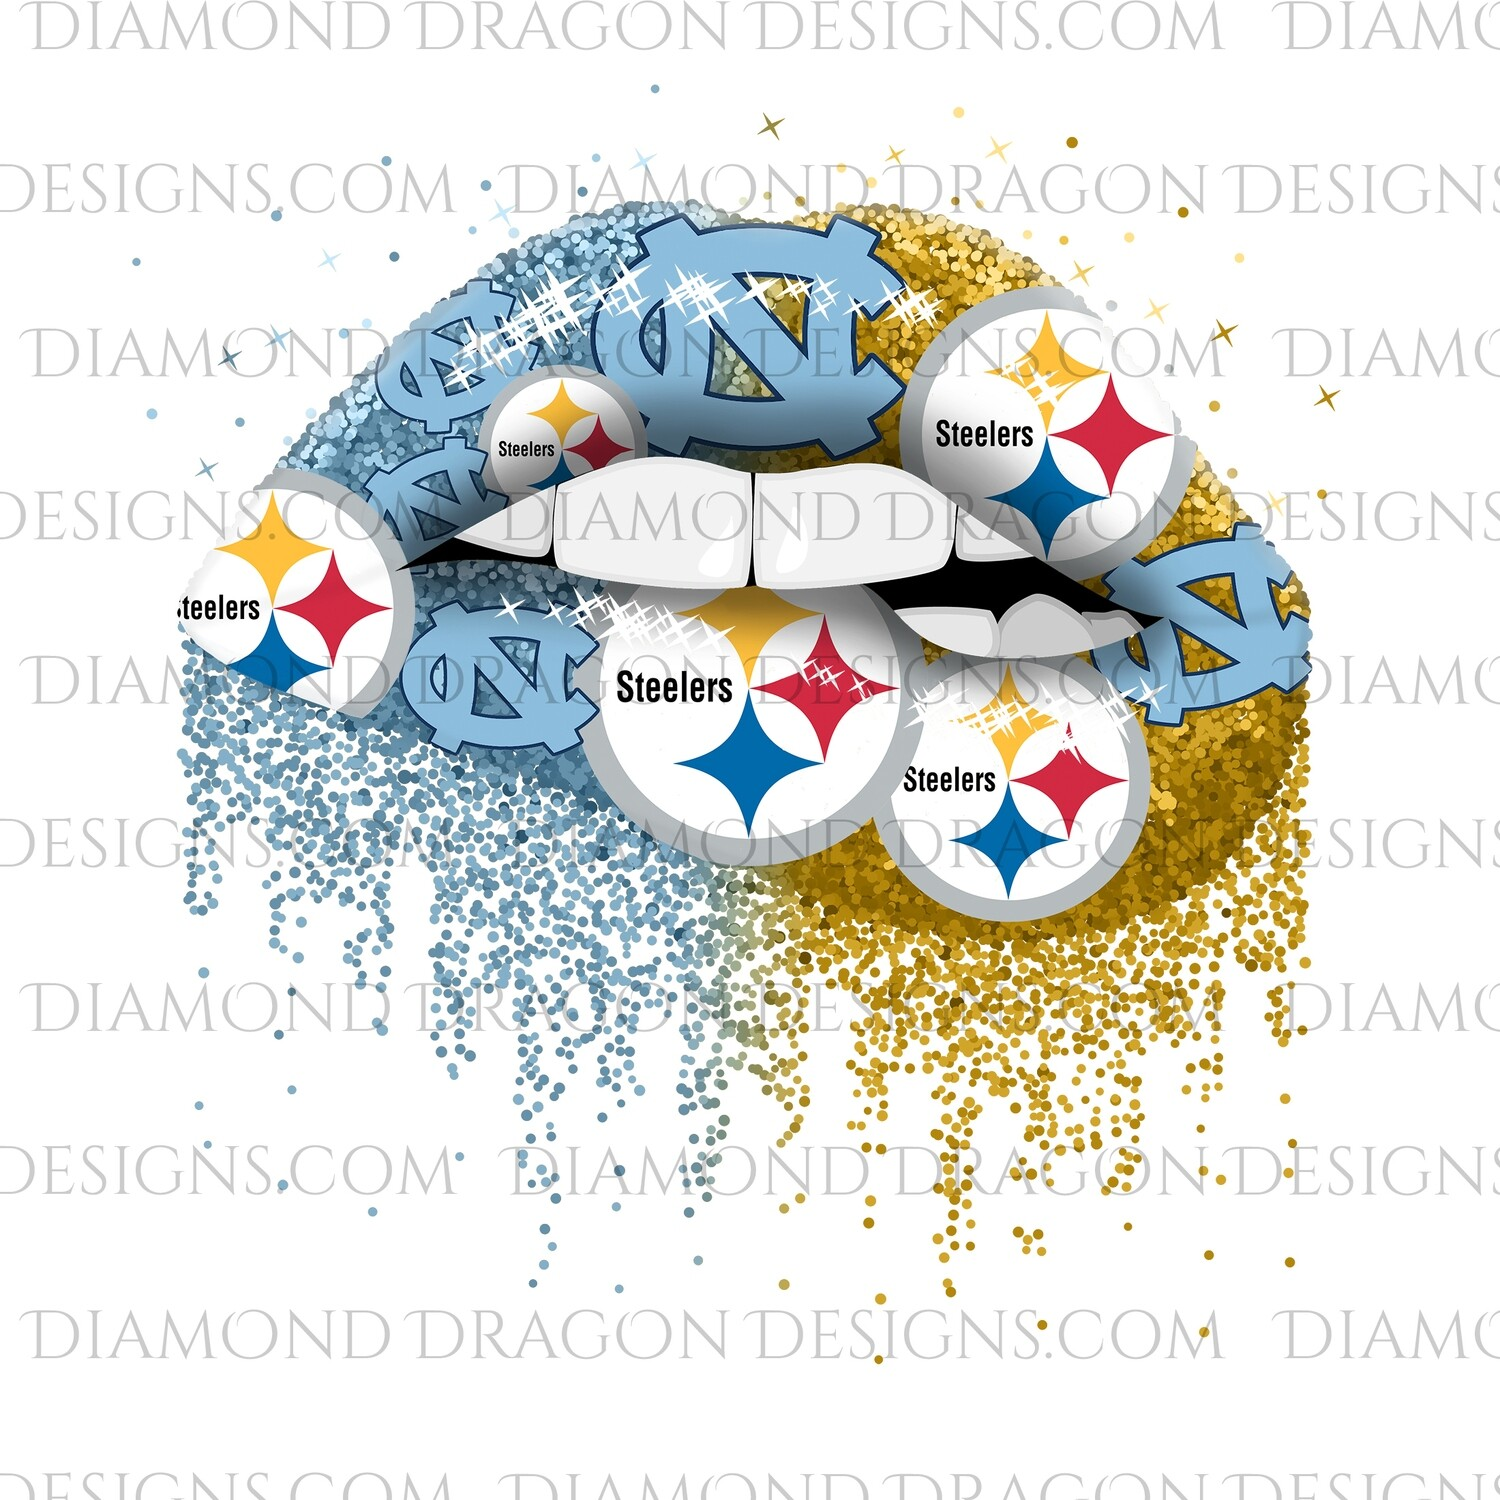 Sports - Glitter Lips, NC & Steelers, Digital Image